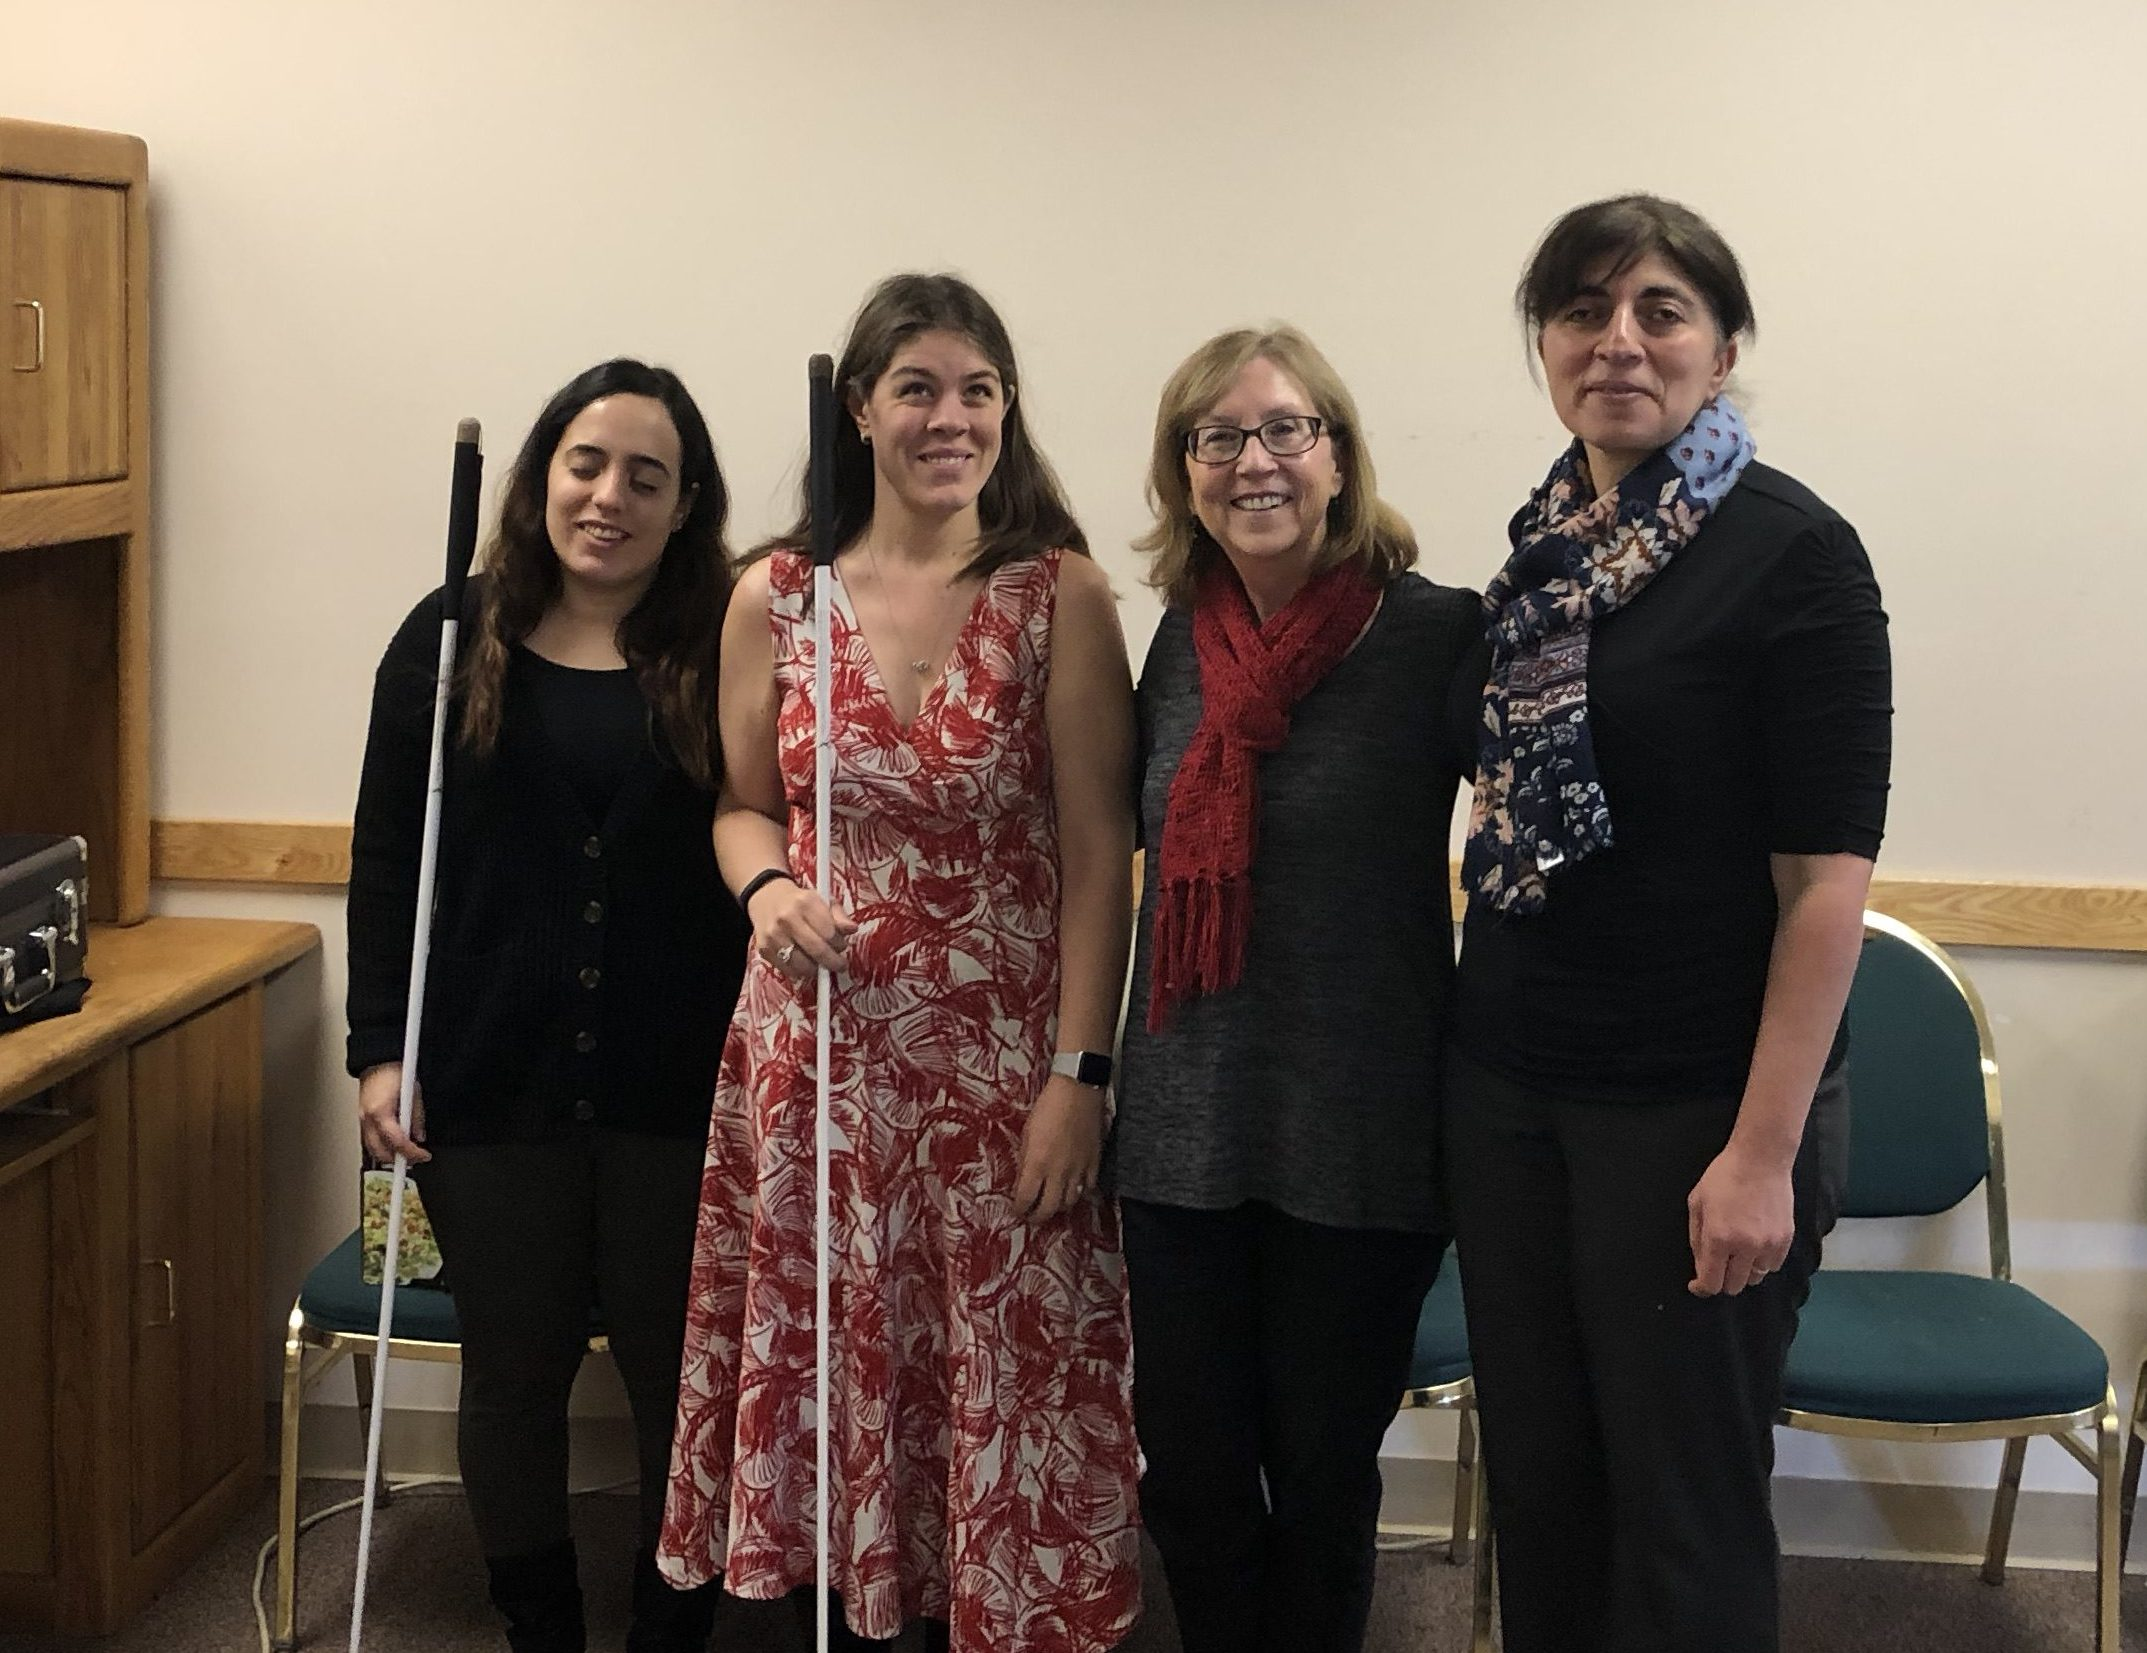 Four smiling women stand together in the Senior Resource Room